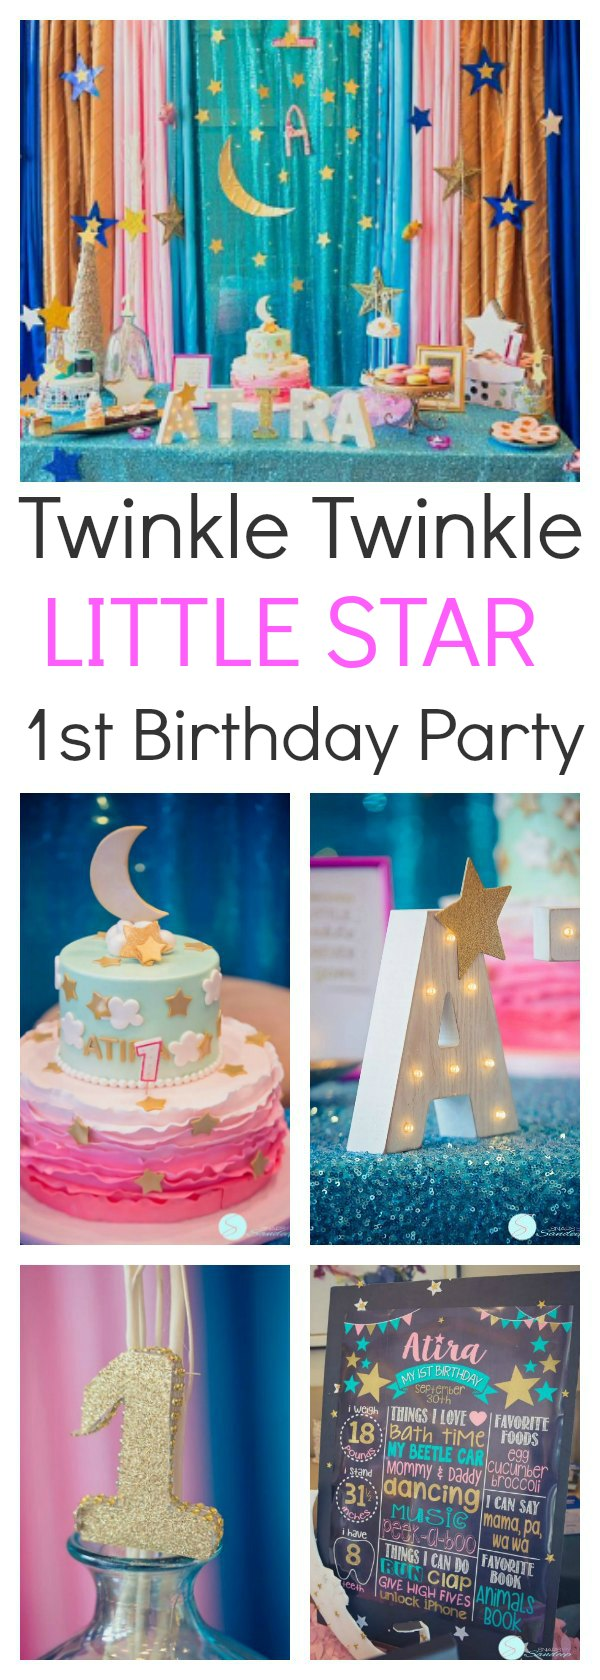 """A twinkle twinkle little star birthday party is the perfect way to celebrate in style. From the sparkly decoration, to the beautiful desserts, this is the kind of party that will make everyone smile.""""Twinkle twinkle little star, I've grown so much and come so far"""". What an absolutely beautiful way to celebrate!"""